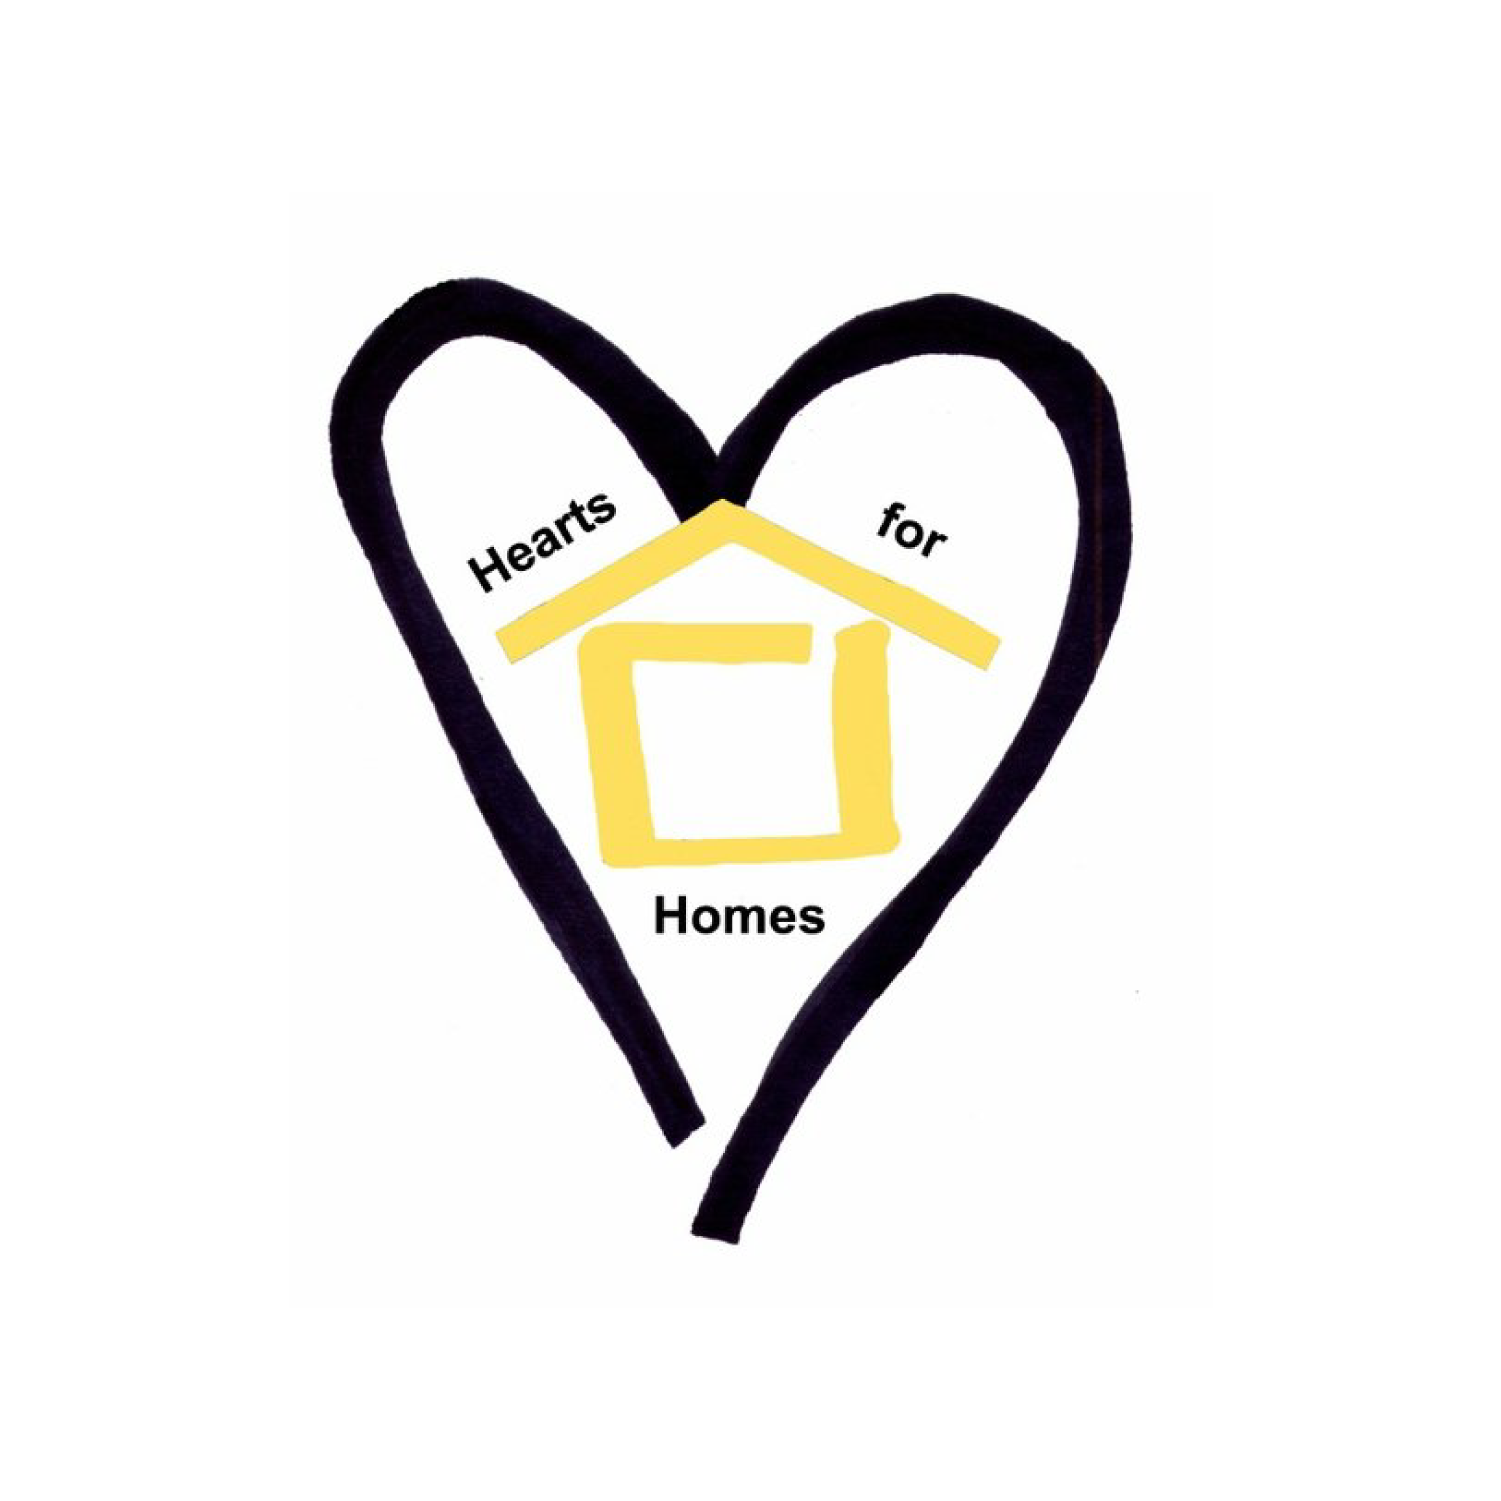 Hearts for Homes provides hope and dignity through no-cost home repairs, which affords low-income seniors a safe, comfortable, and well-functioning home.   Housing, Advocacy